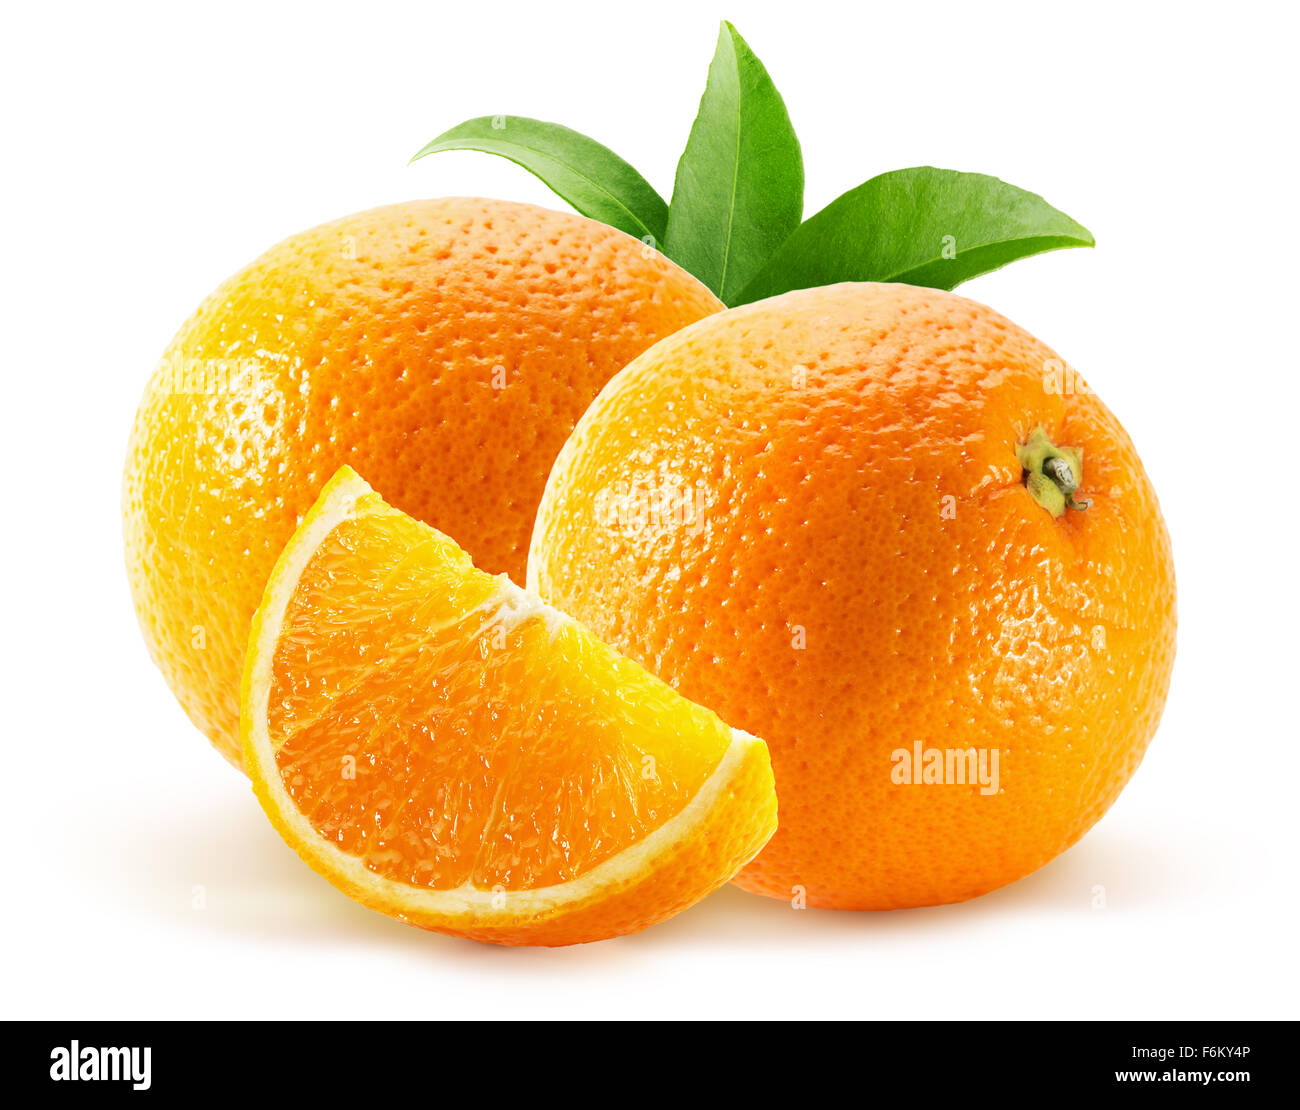 oranges isolated on the white background. - Stock Image